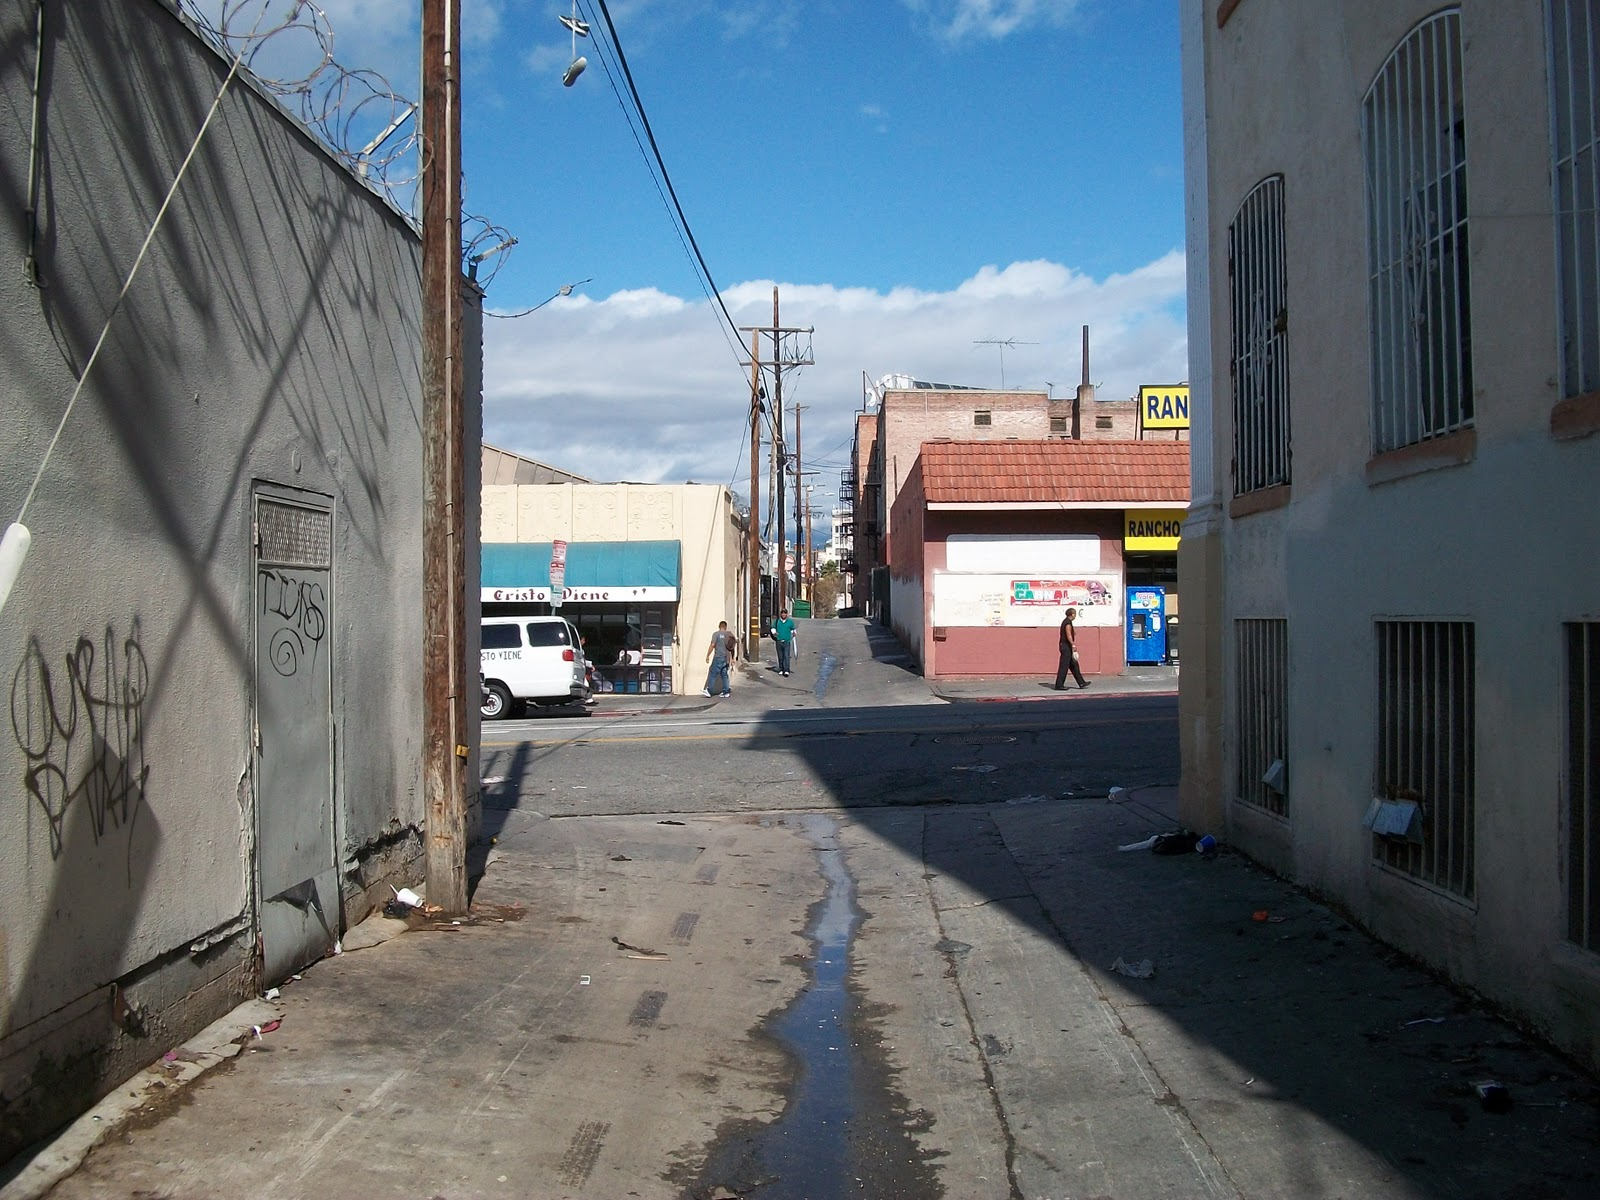 Filming Locations Of Chicago And Los Angeles Training Day